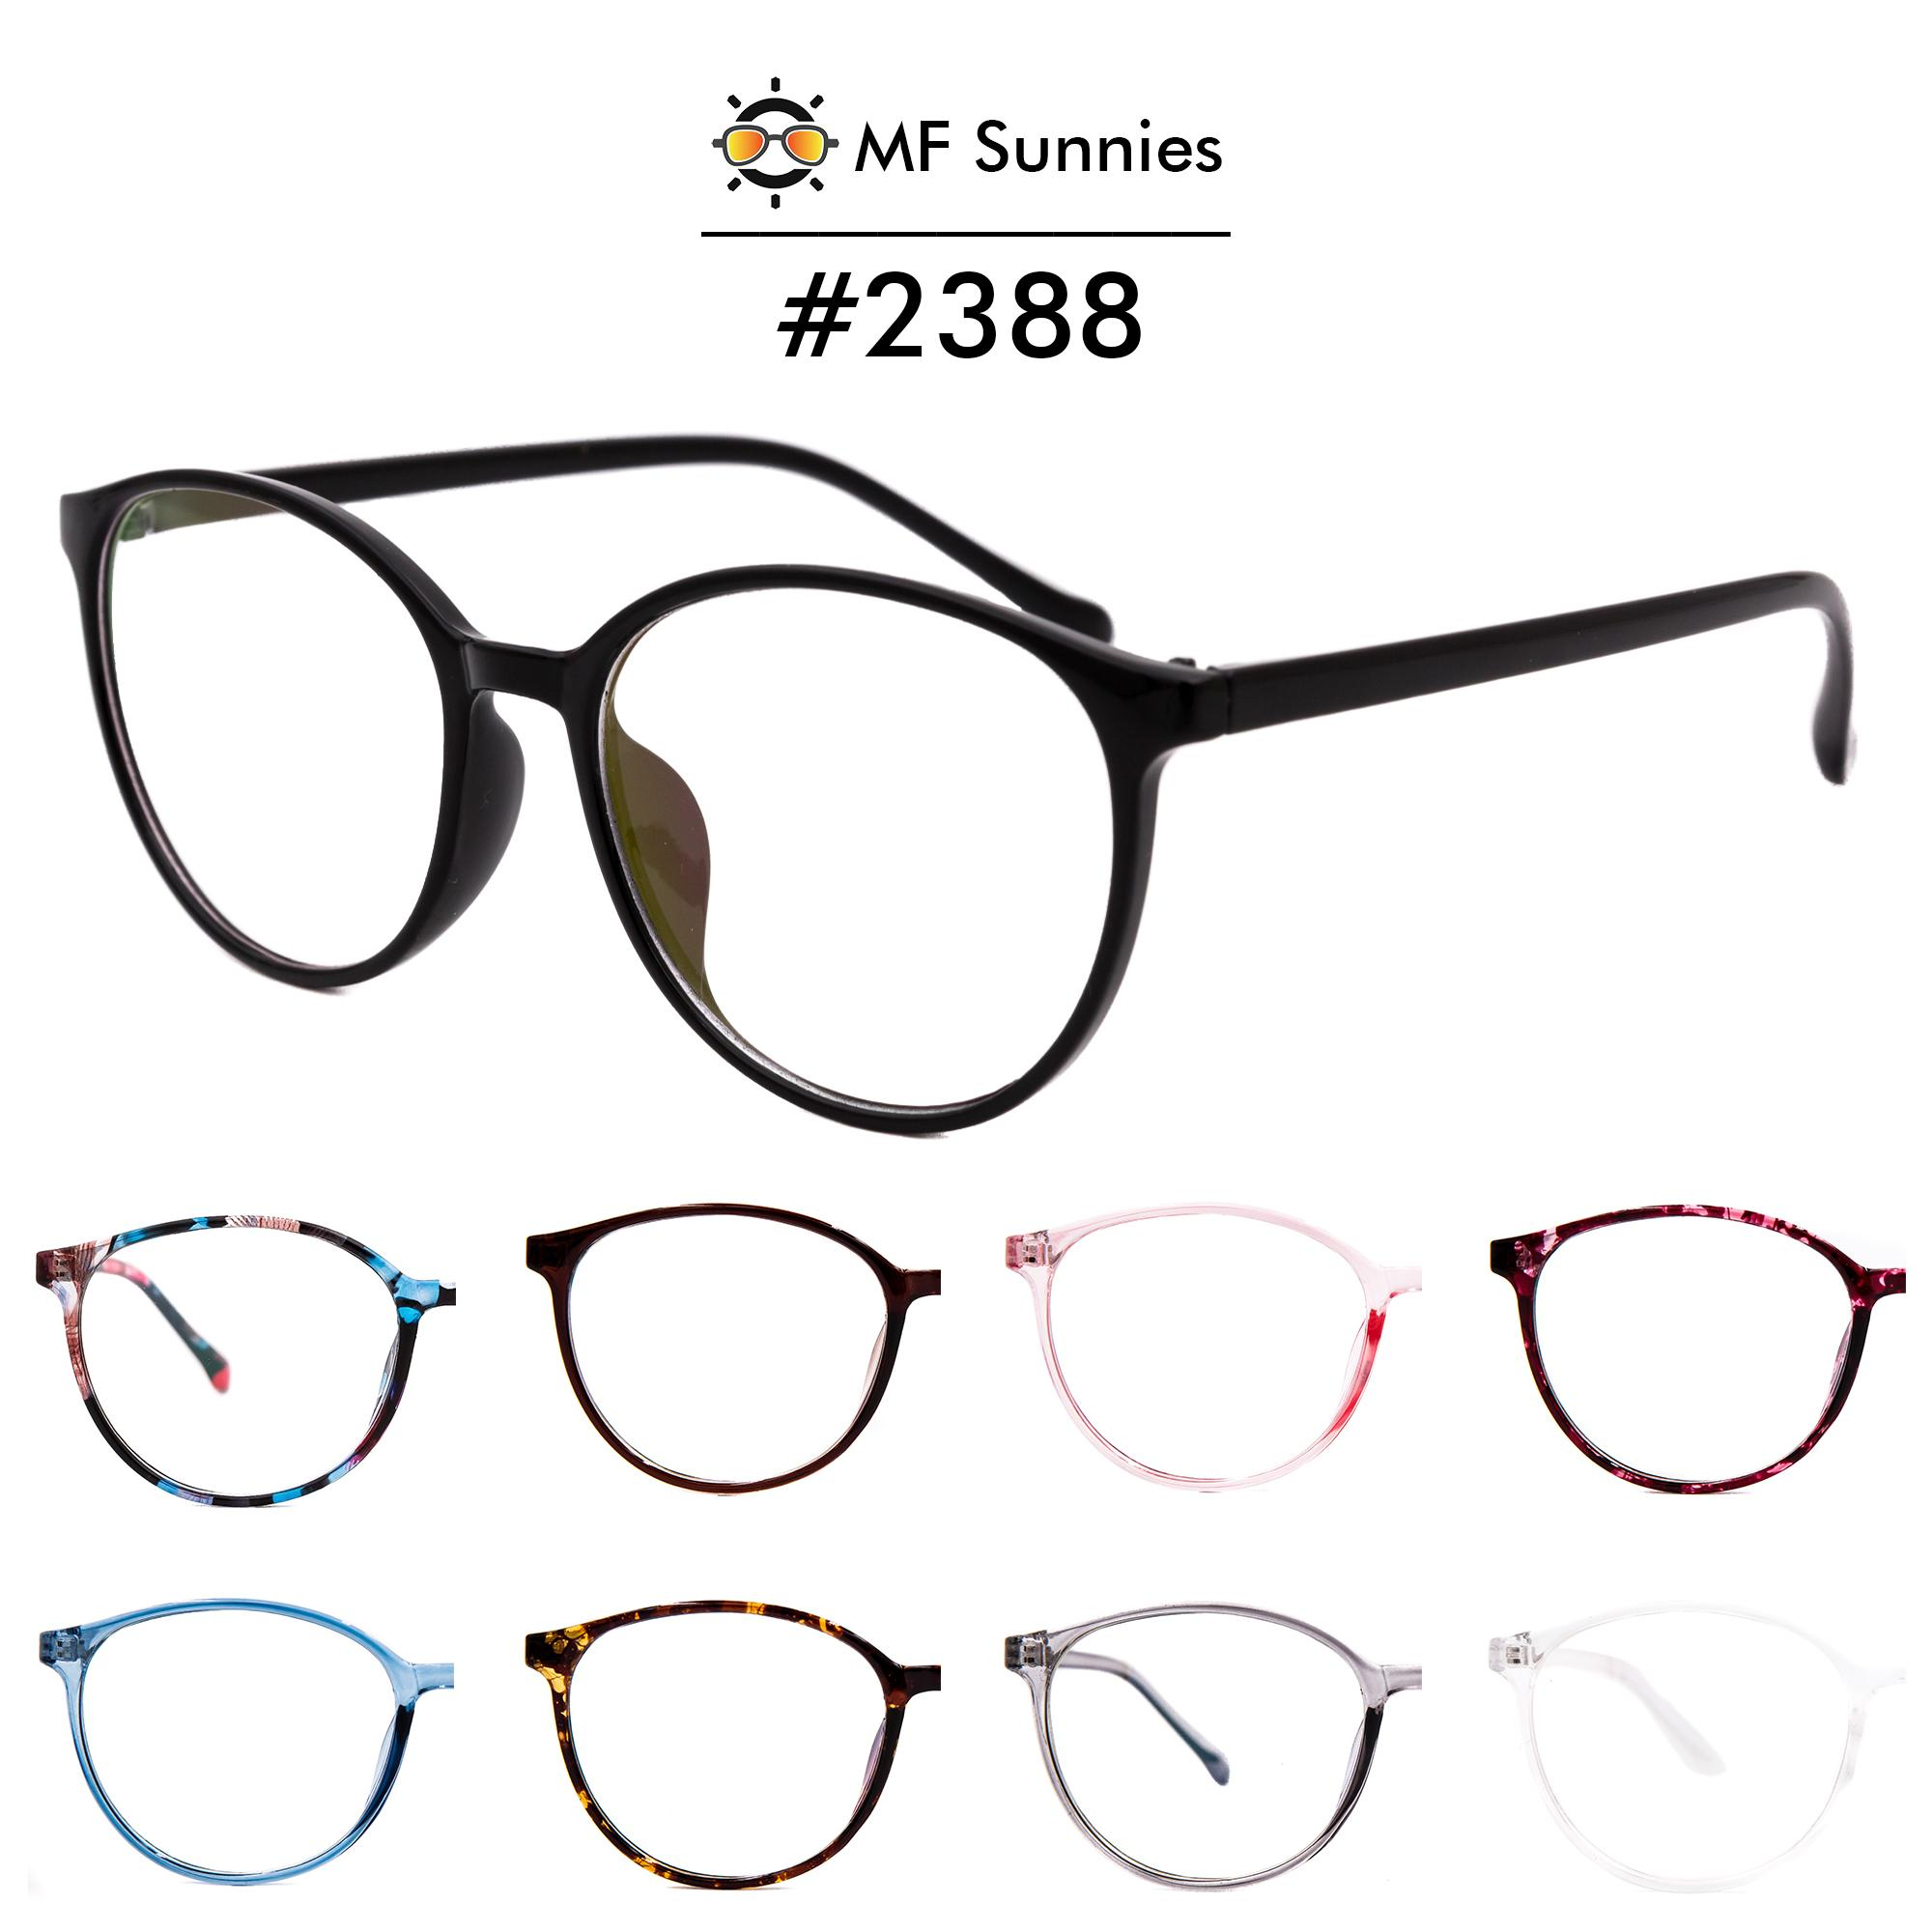 64b6bcb361 MFSunnies Computer Anti-Radiation Blue light Unisex eyewear Premium Acetate  optical frame Metal hinges Super lightweight Round eyeglass  2388